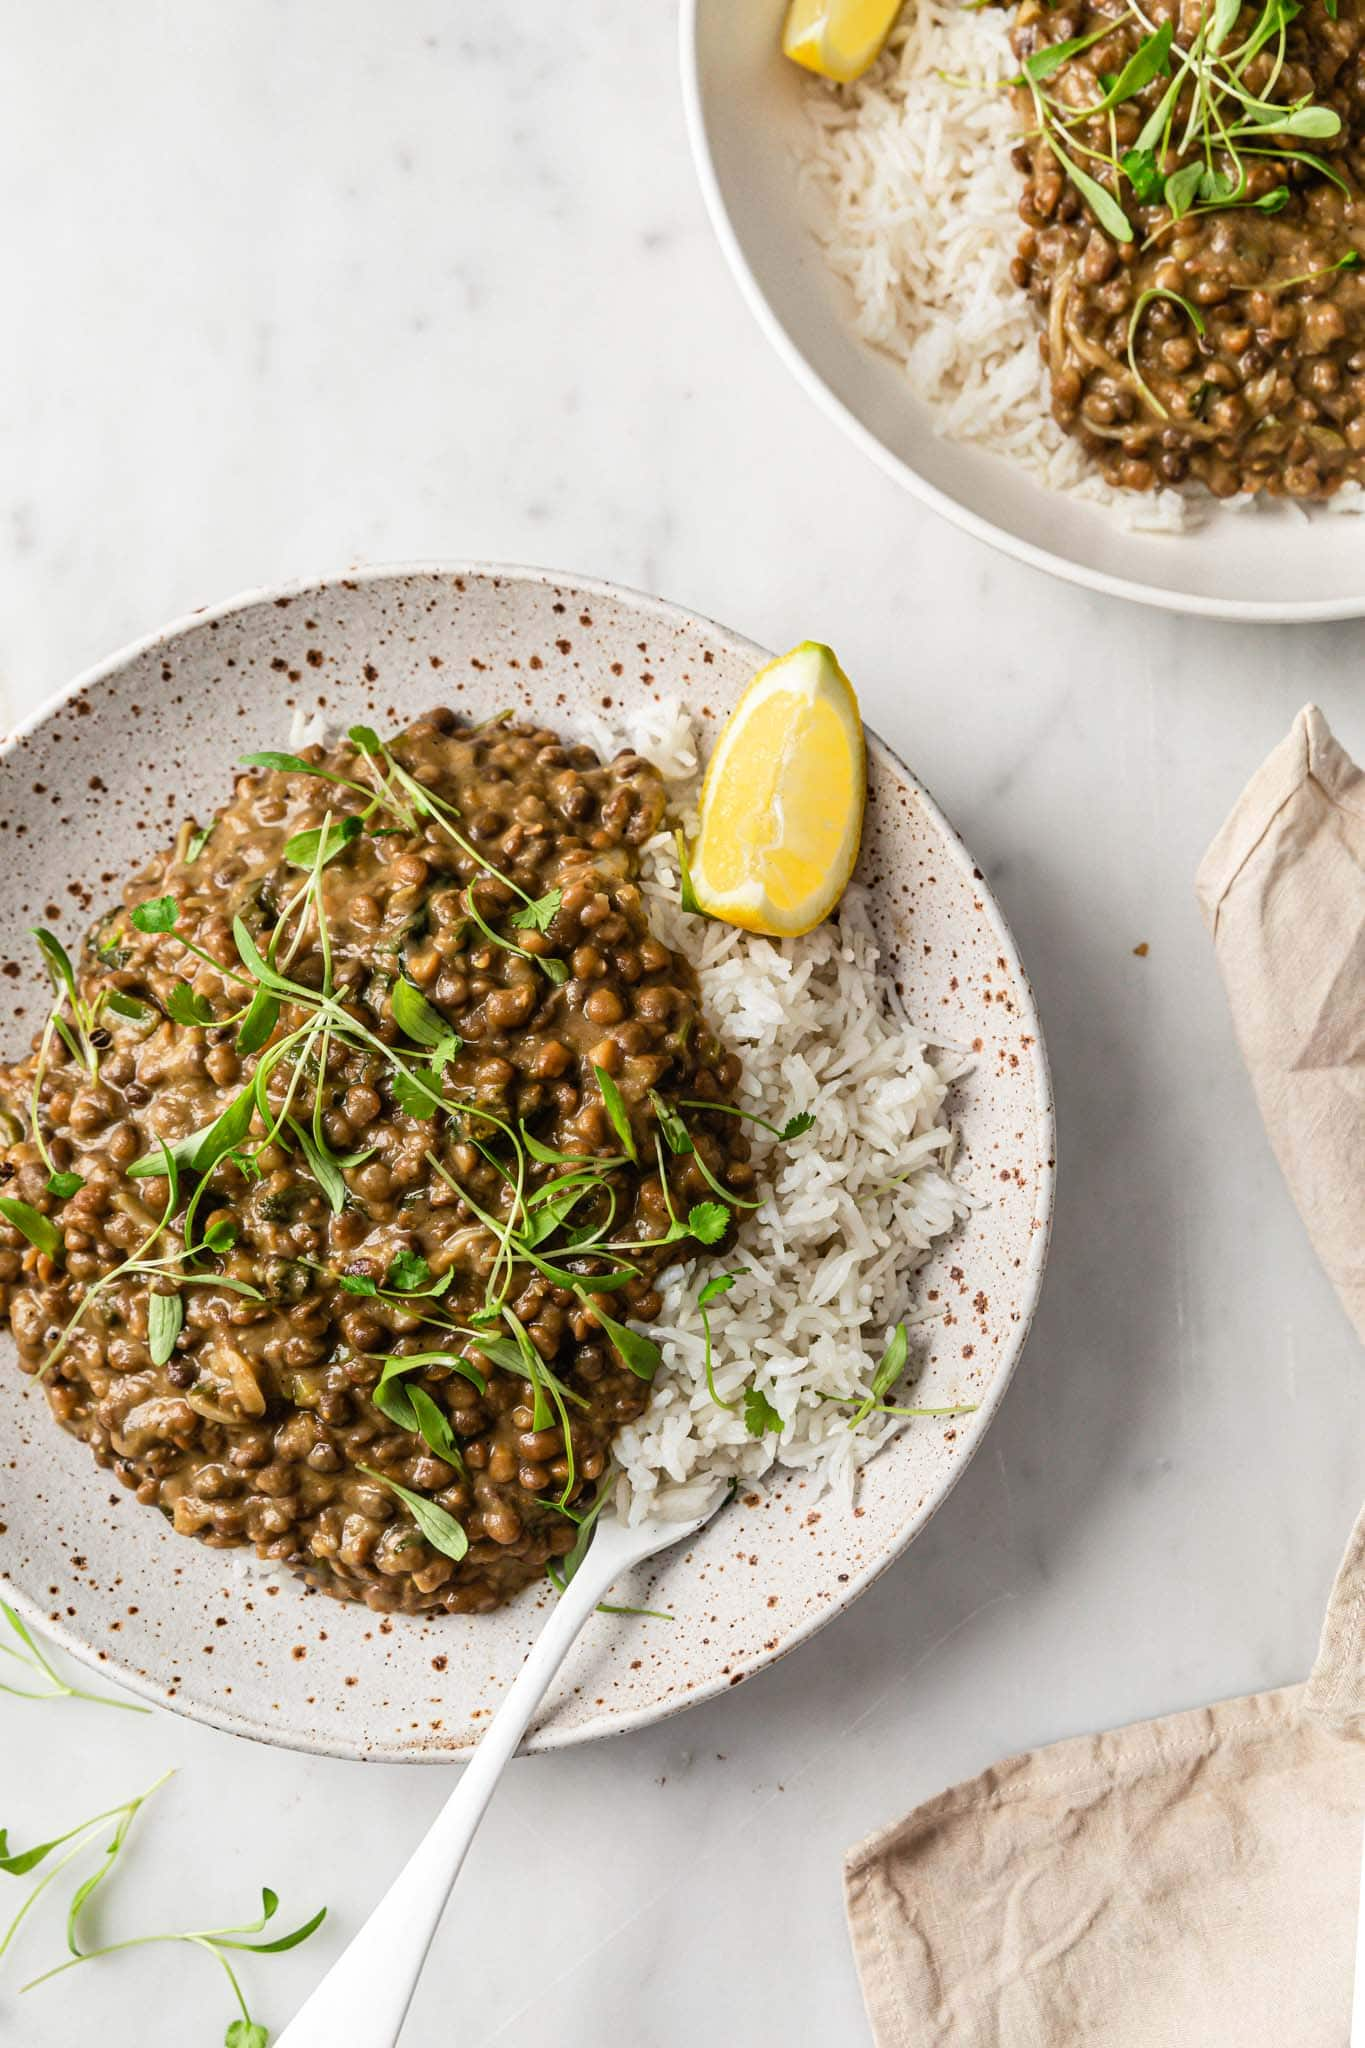 Whole Masoor Dal with basmati rice and silverware garnished with cilantro and served with a lemon wedge